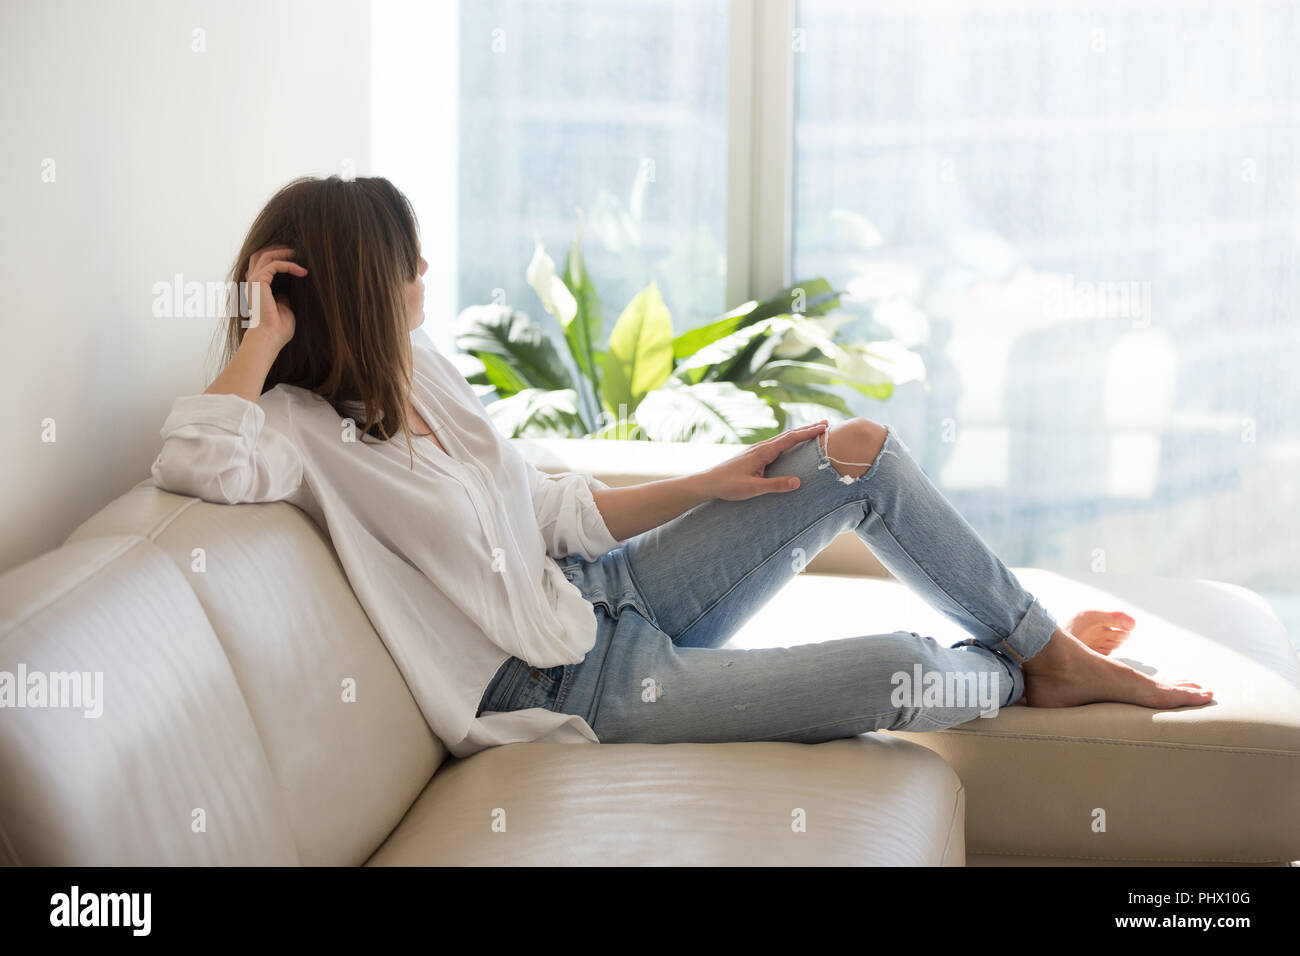 Relaxed thoughtful woman enjoying wellbeing dreaming at luxury l - Stock Image